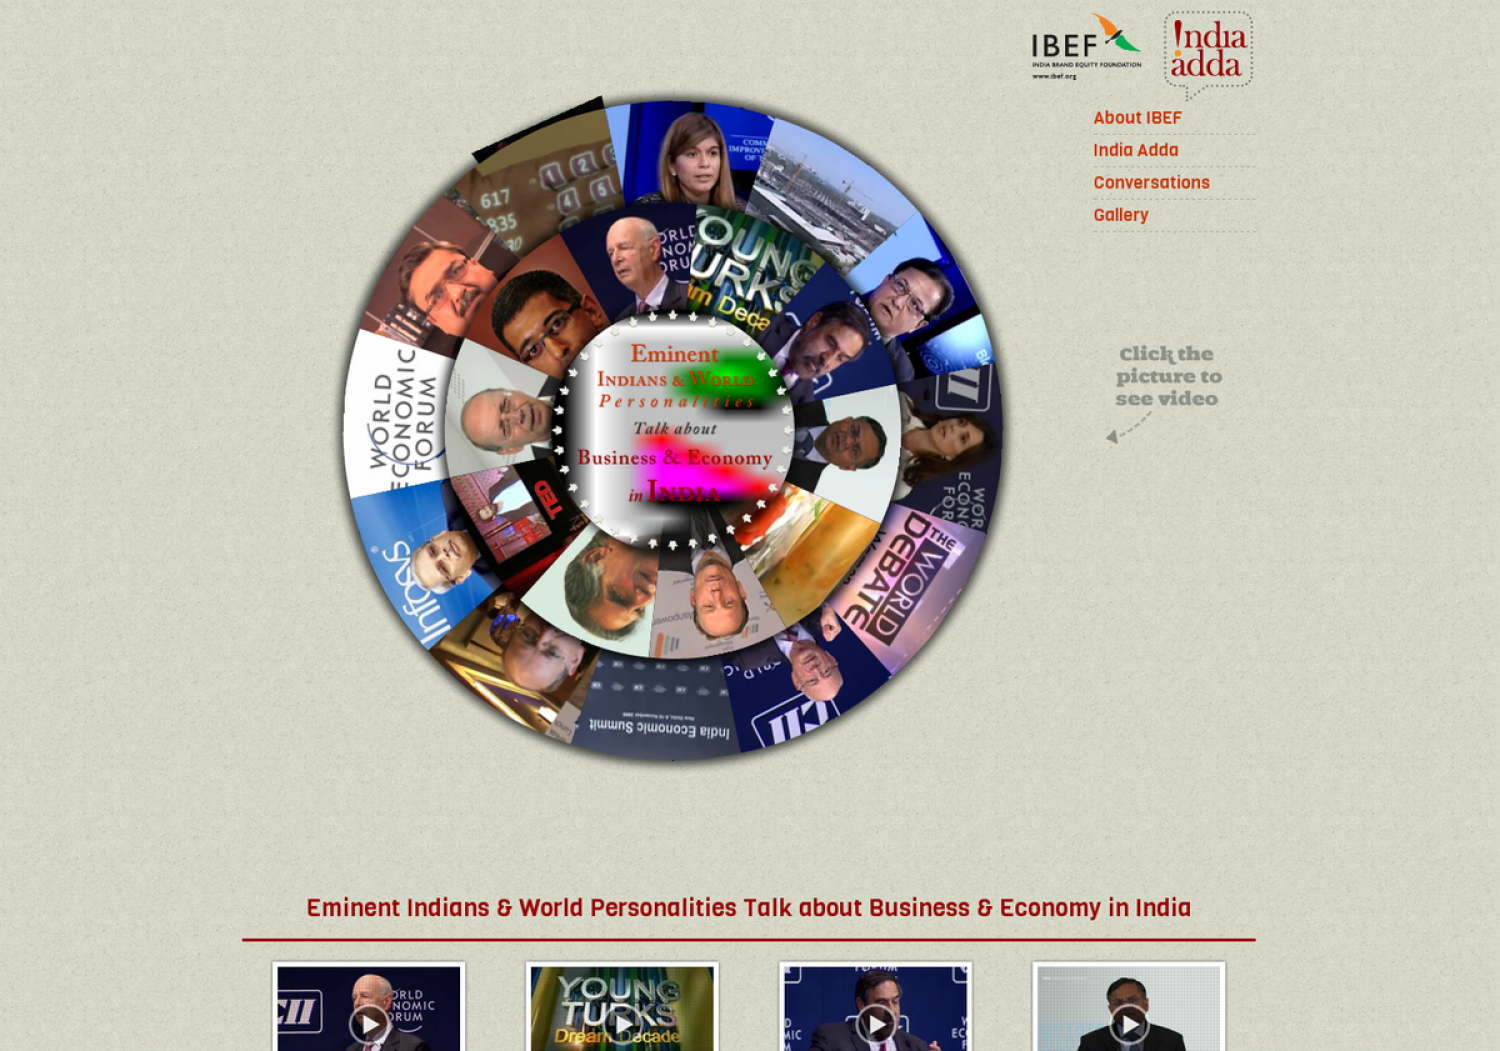 Eminent Indians & World Personalities Talk about Business & Economy in India Infographic